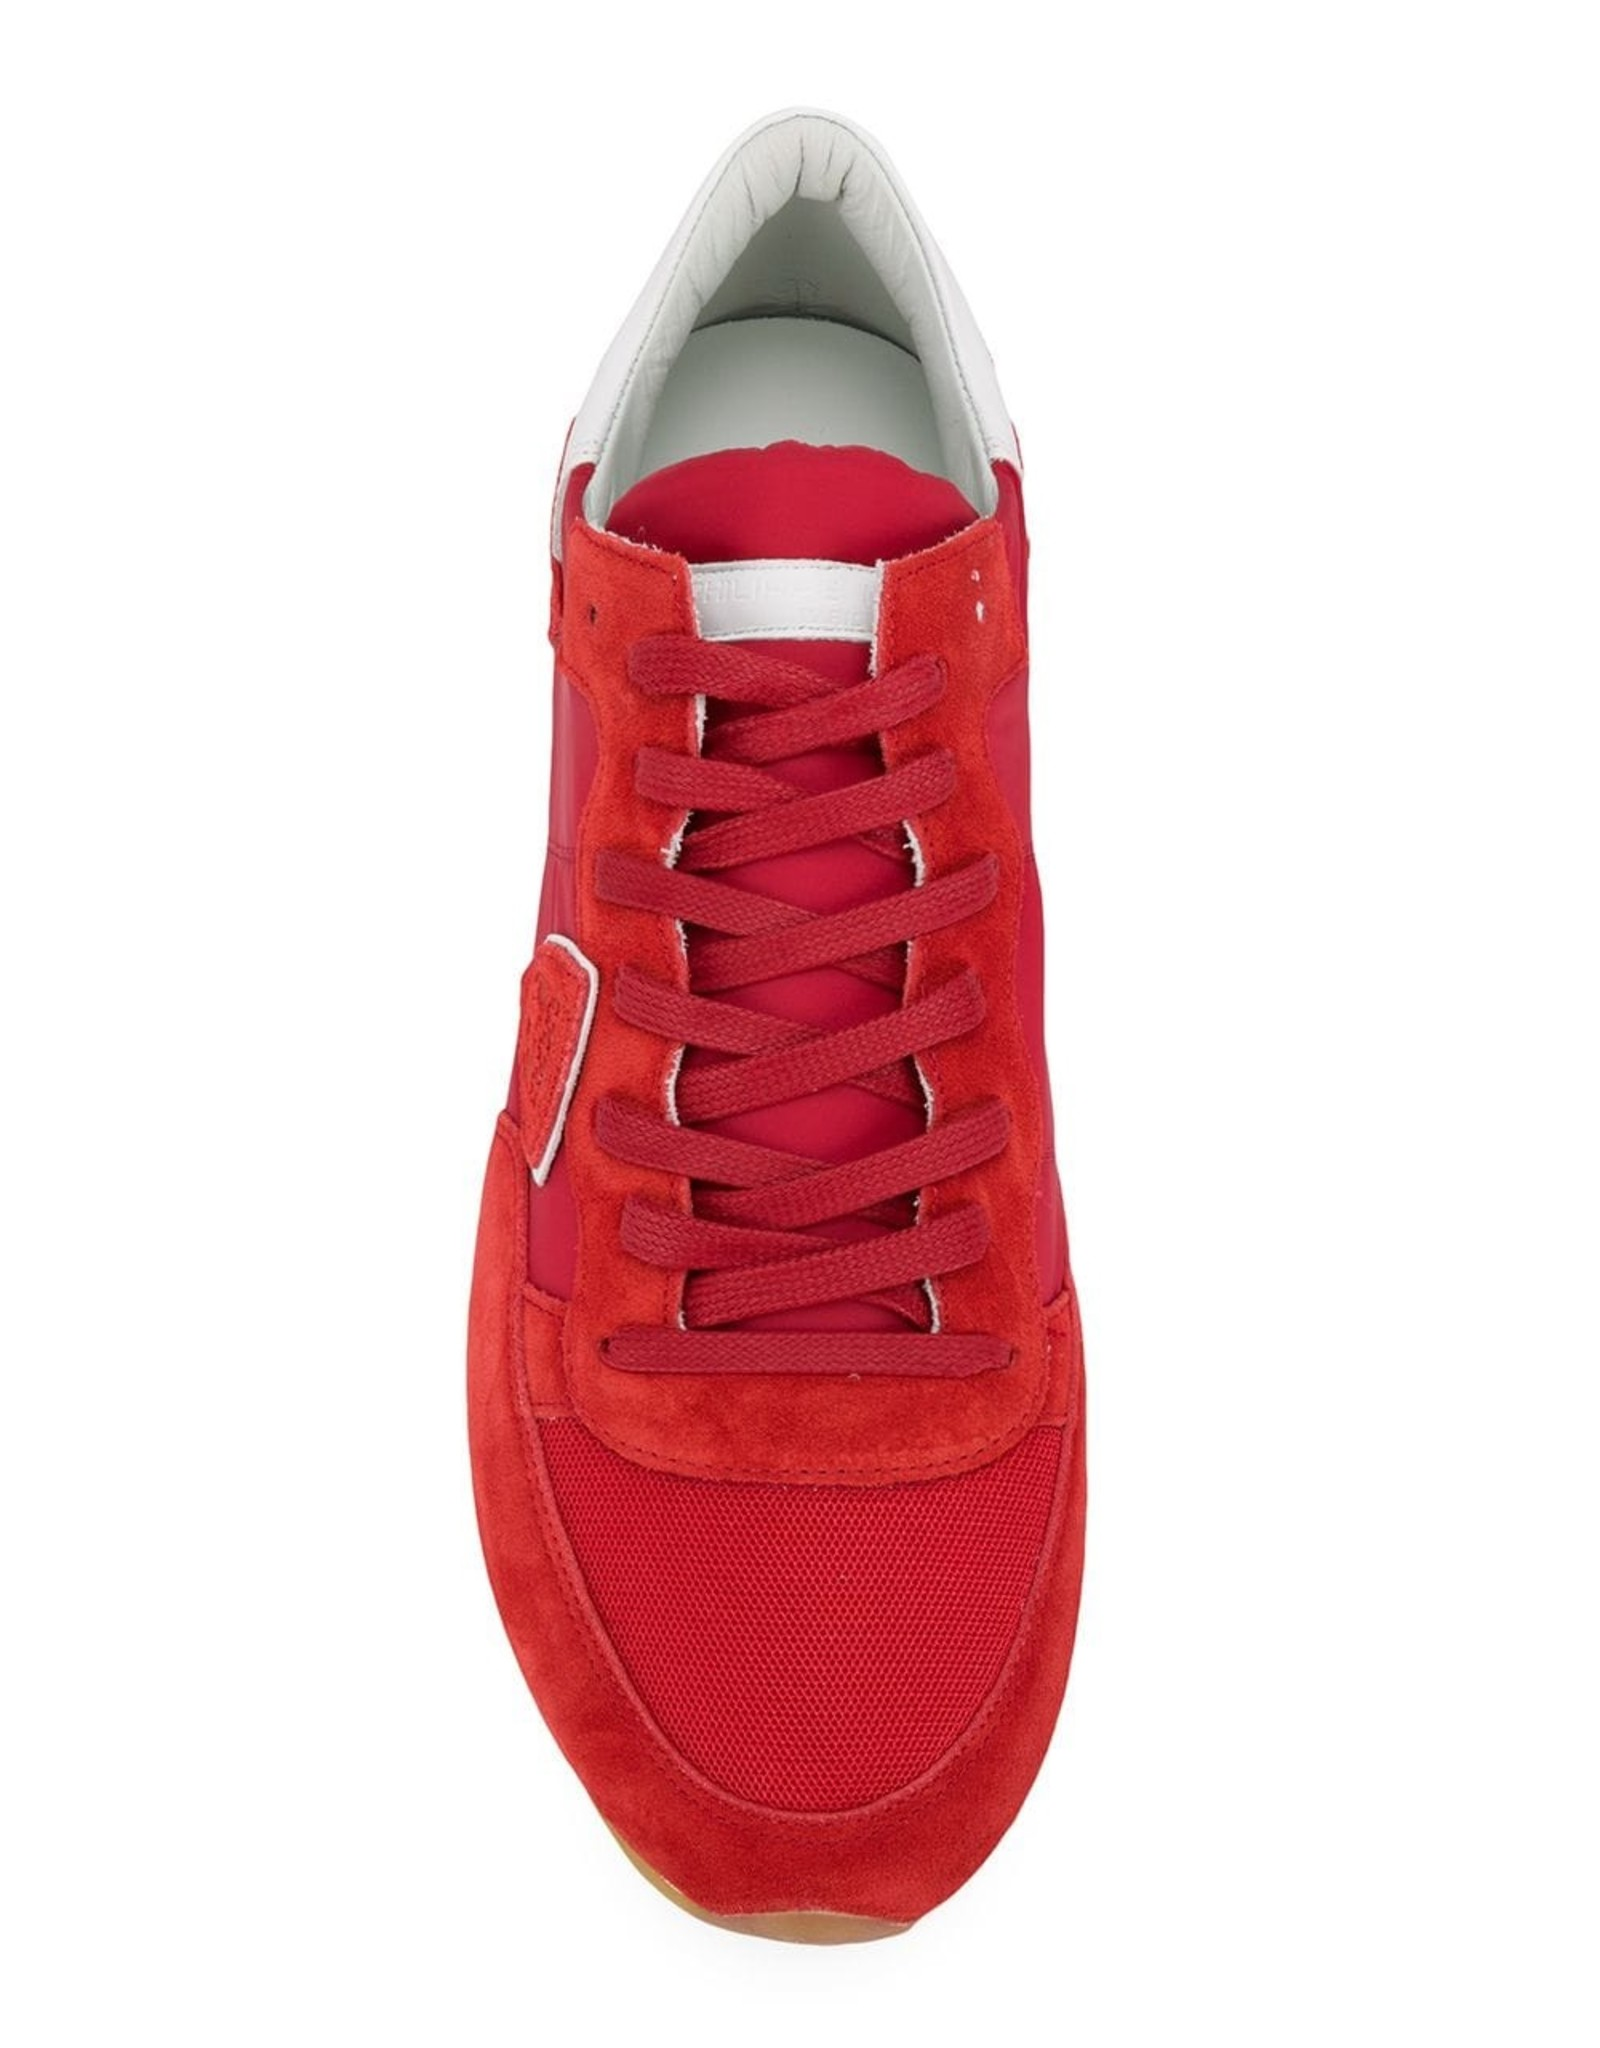 PHILIPPE MODEL  - The Tropez Mondial Sneaker In Red